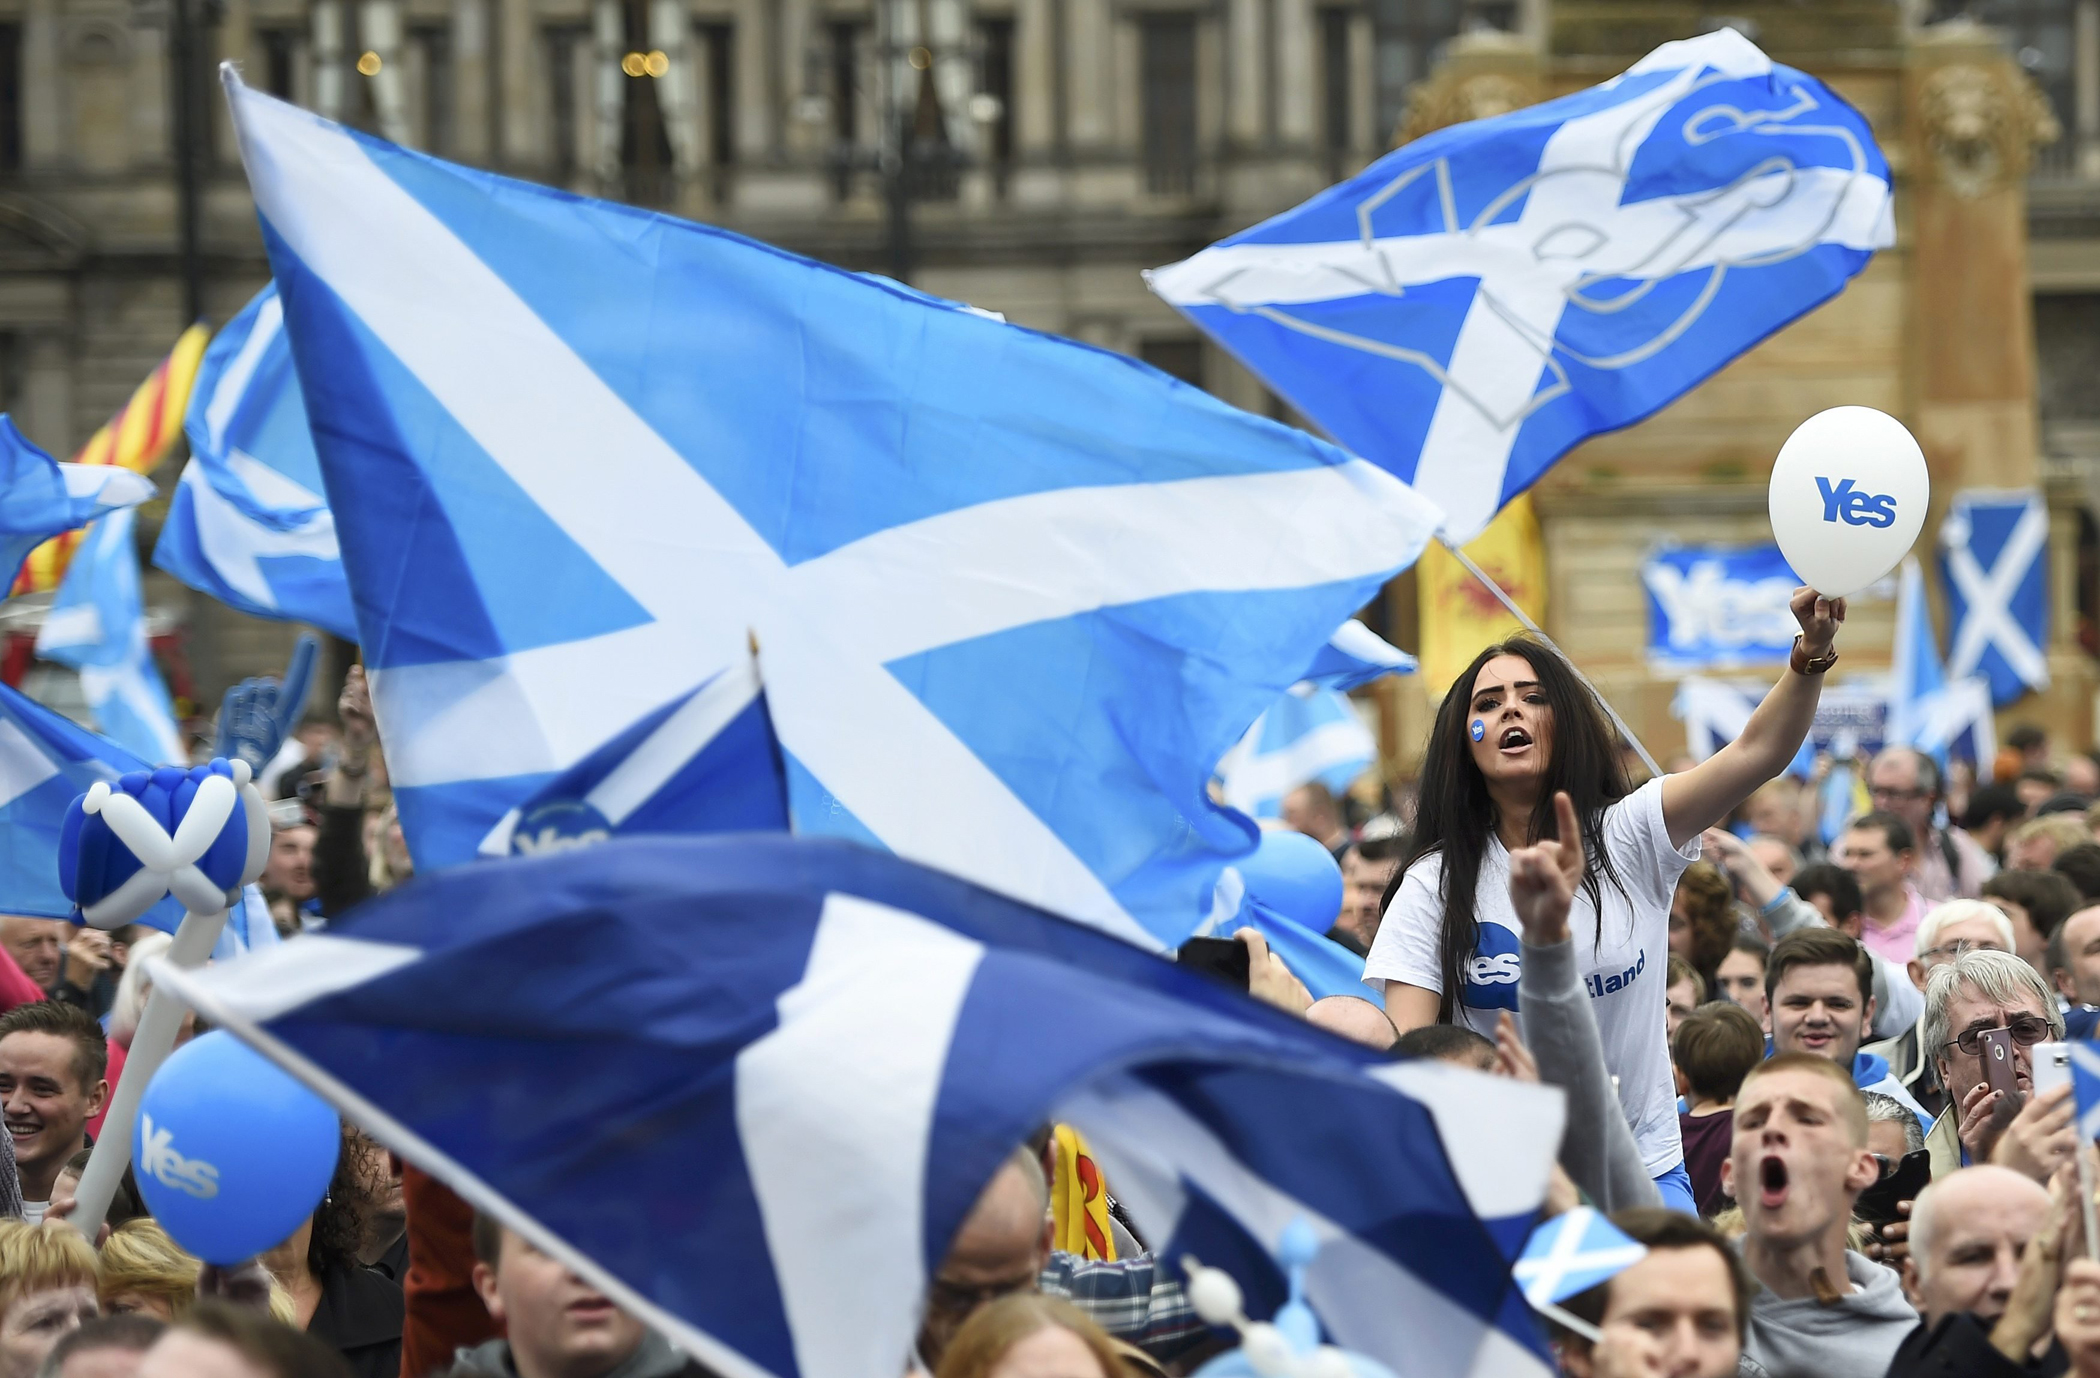 Campaigners wave Scottish Saltires at a 'Yes' campaign rally in Glasgow, Scotland, Sept. 17, 2014.